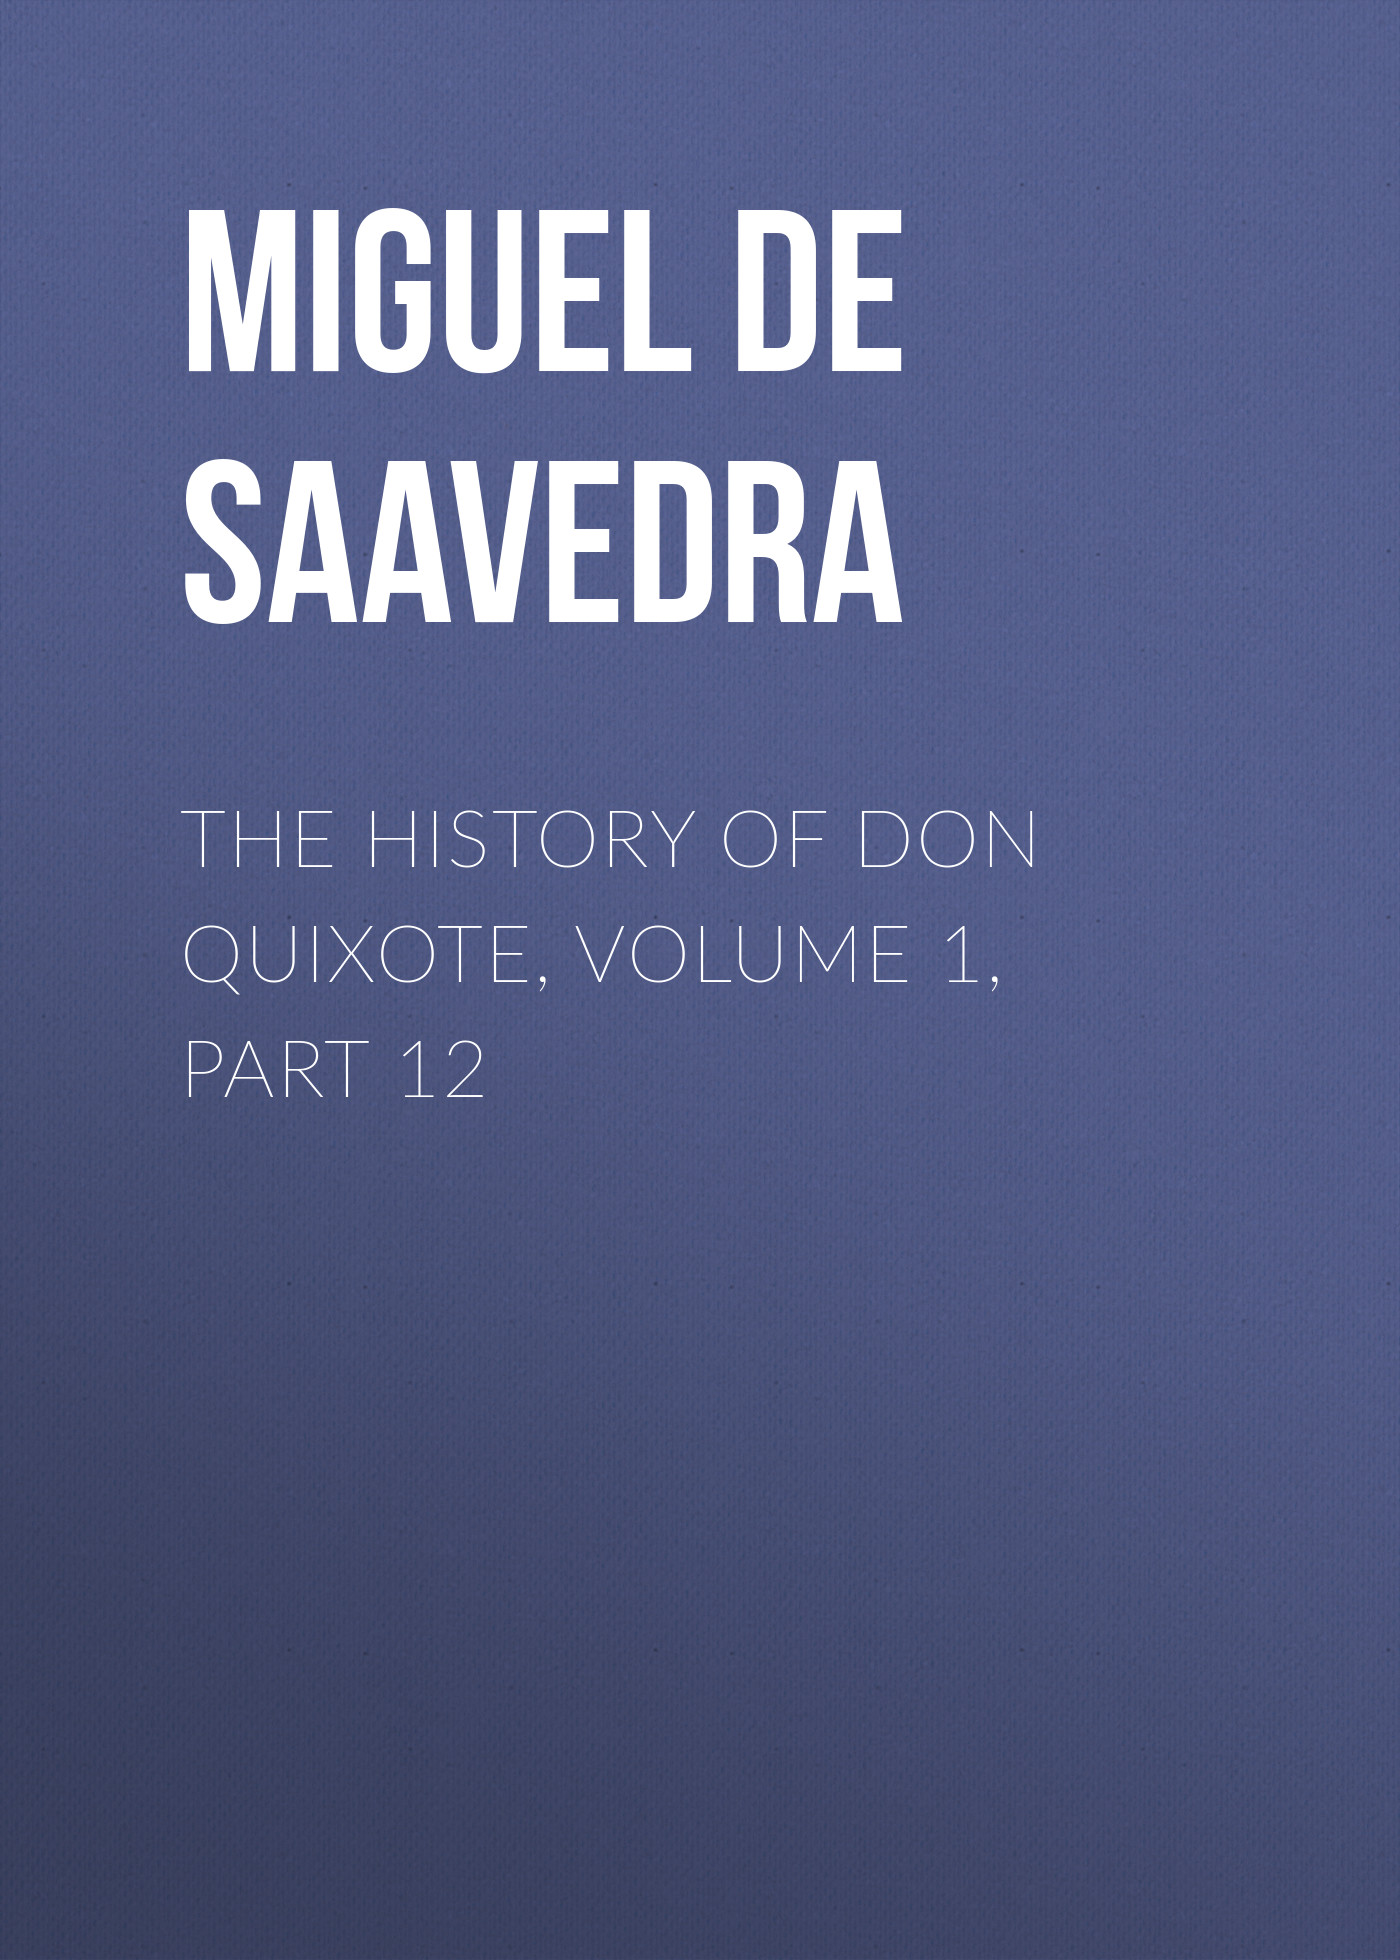 the history of don quixote volume 1 part 12